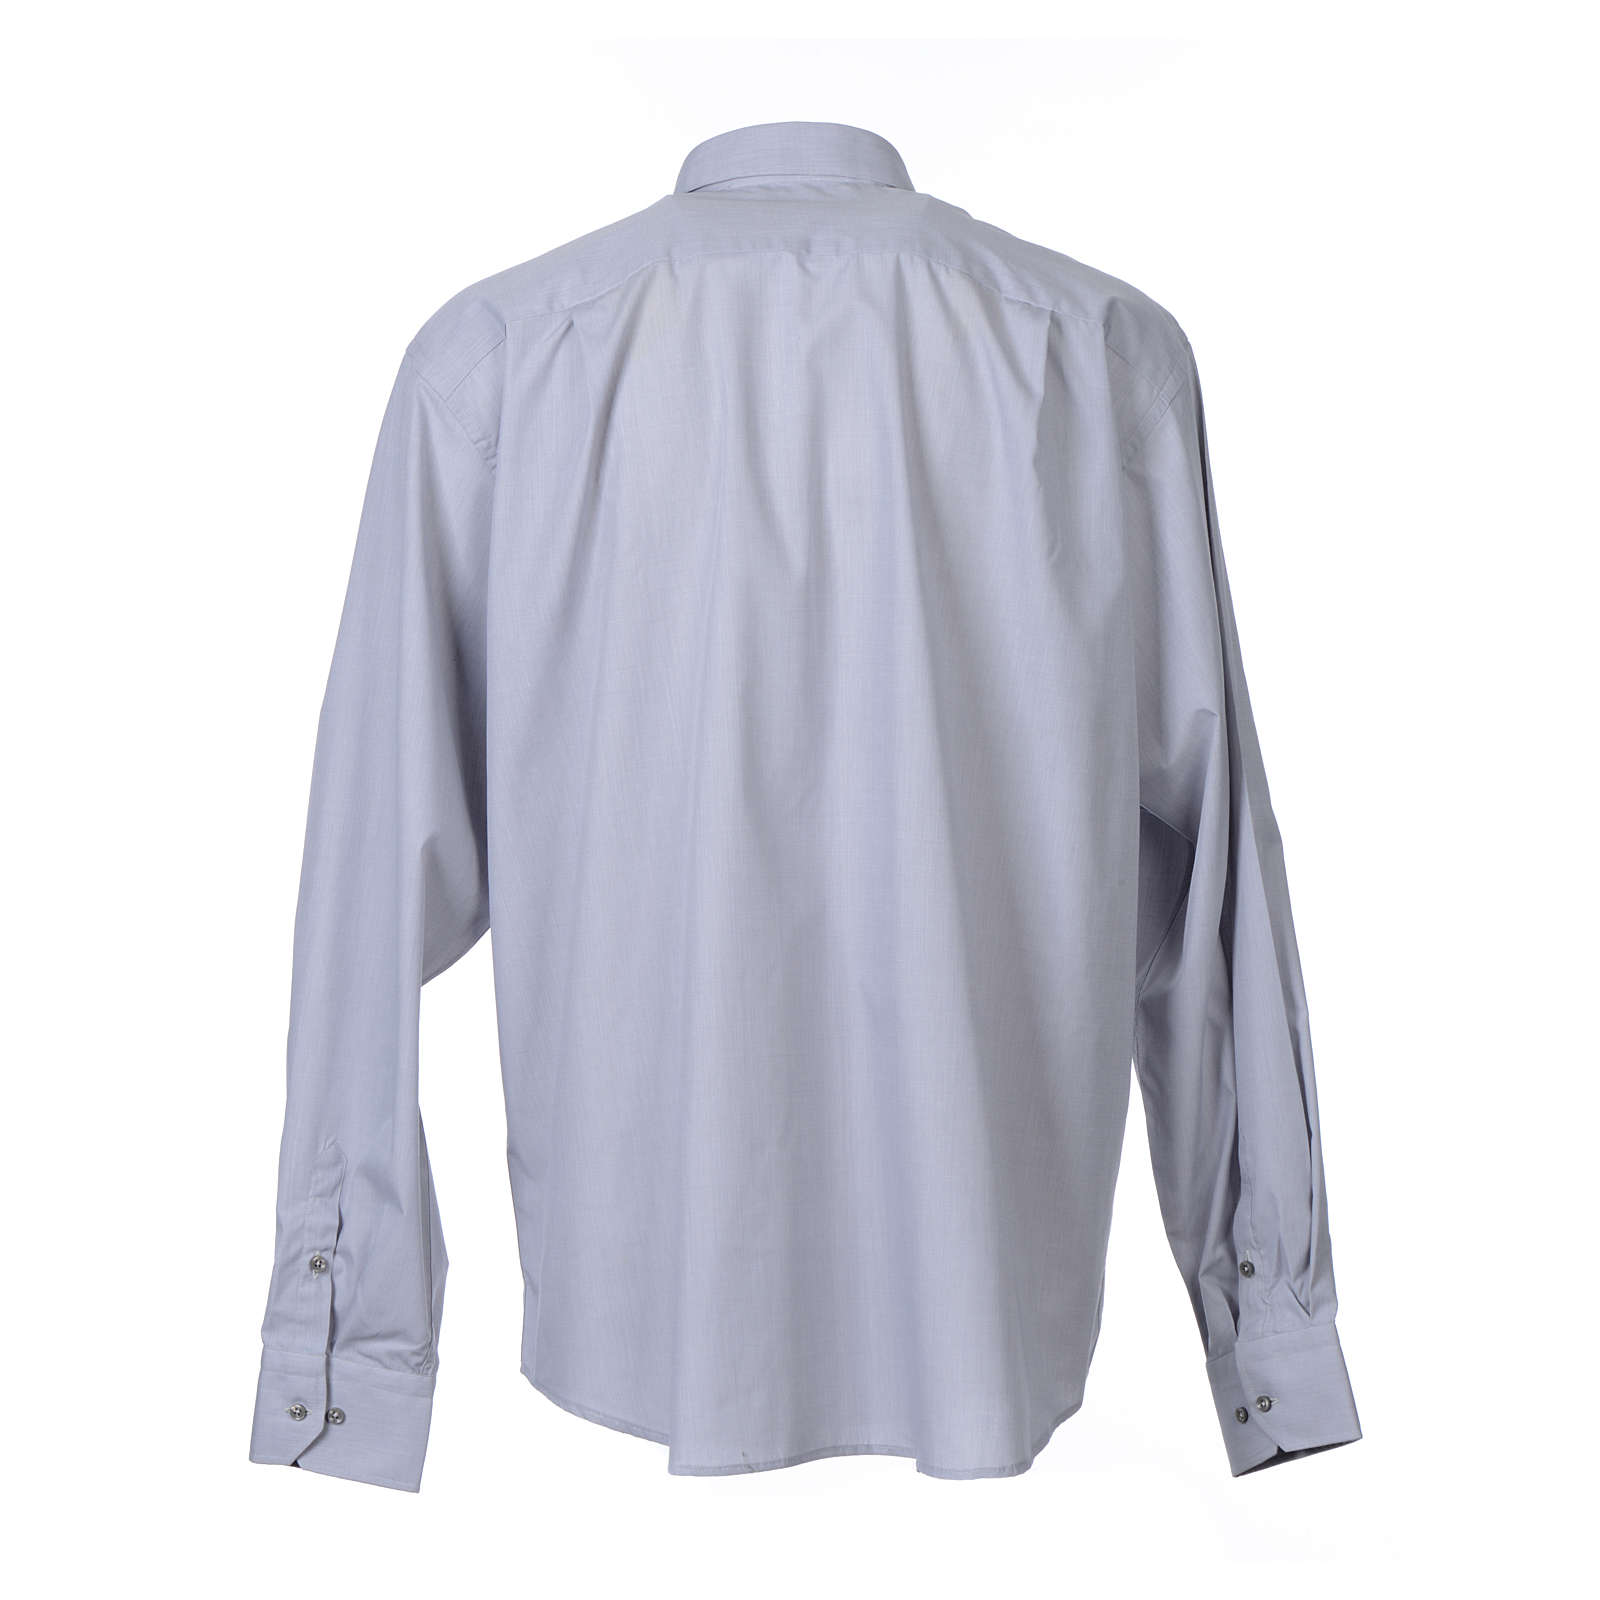 Clergy shirt long sleeves fil-à-fil mixed cotton Light Grey 4